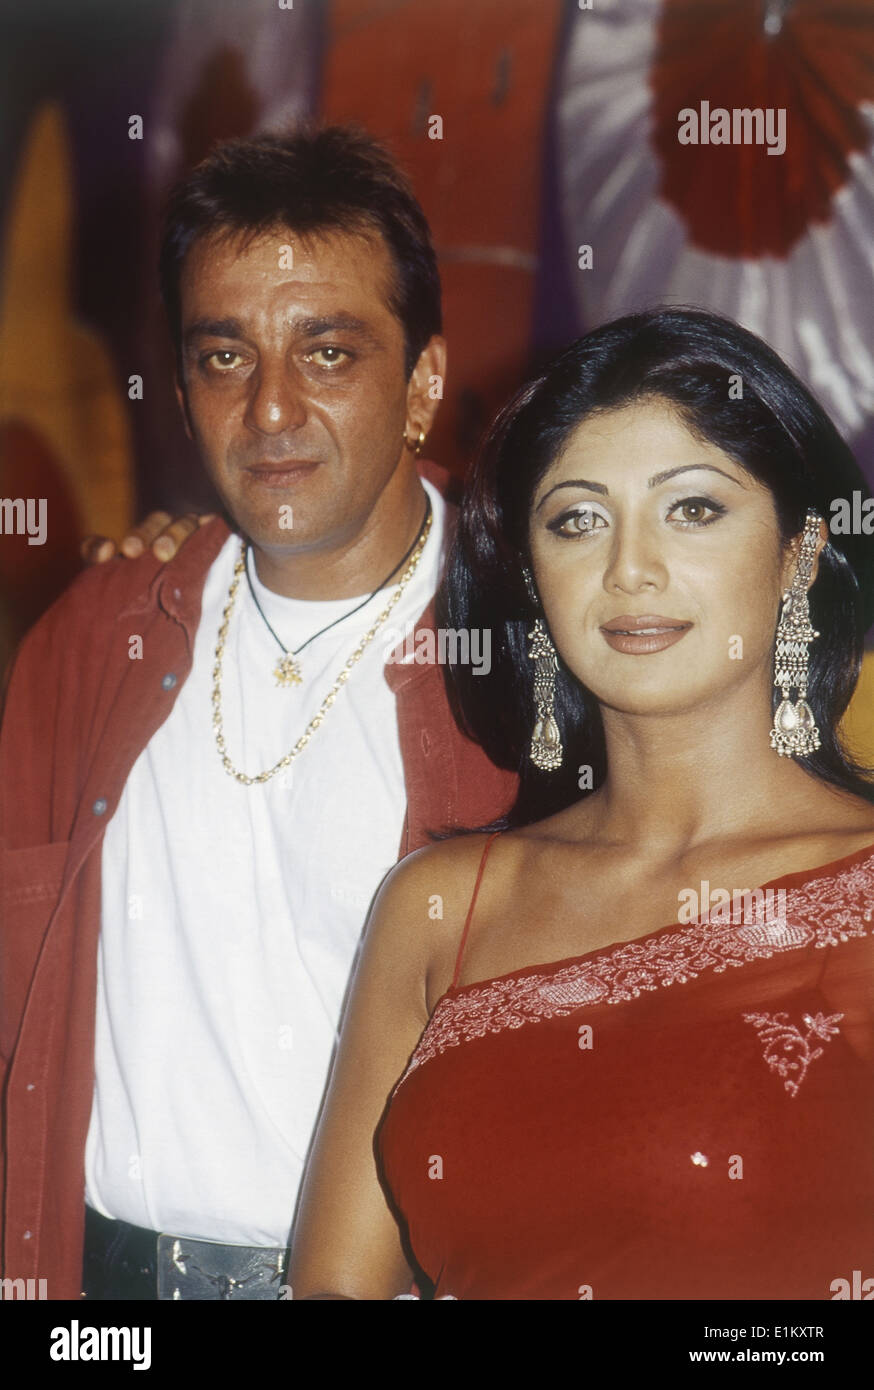 Portrait of Indian film actor Sanjay Dutt and actress ...